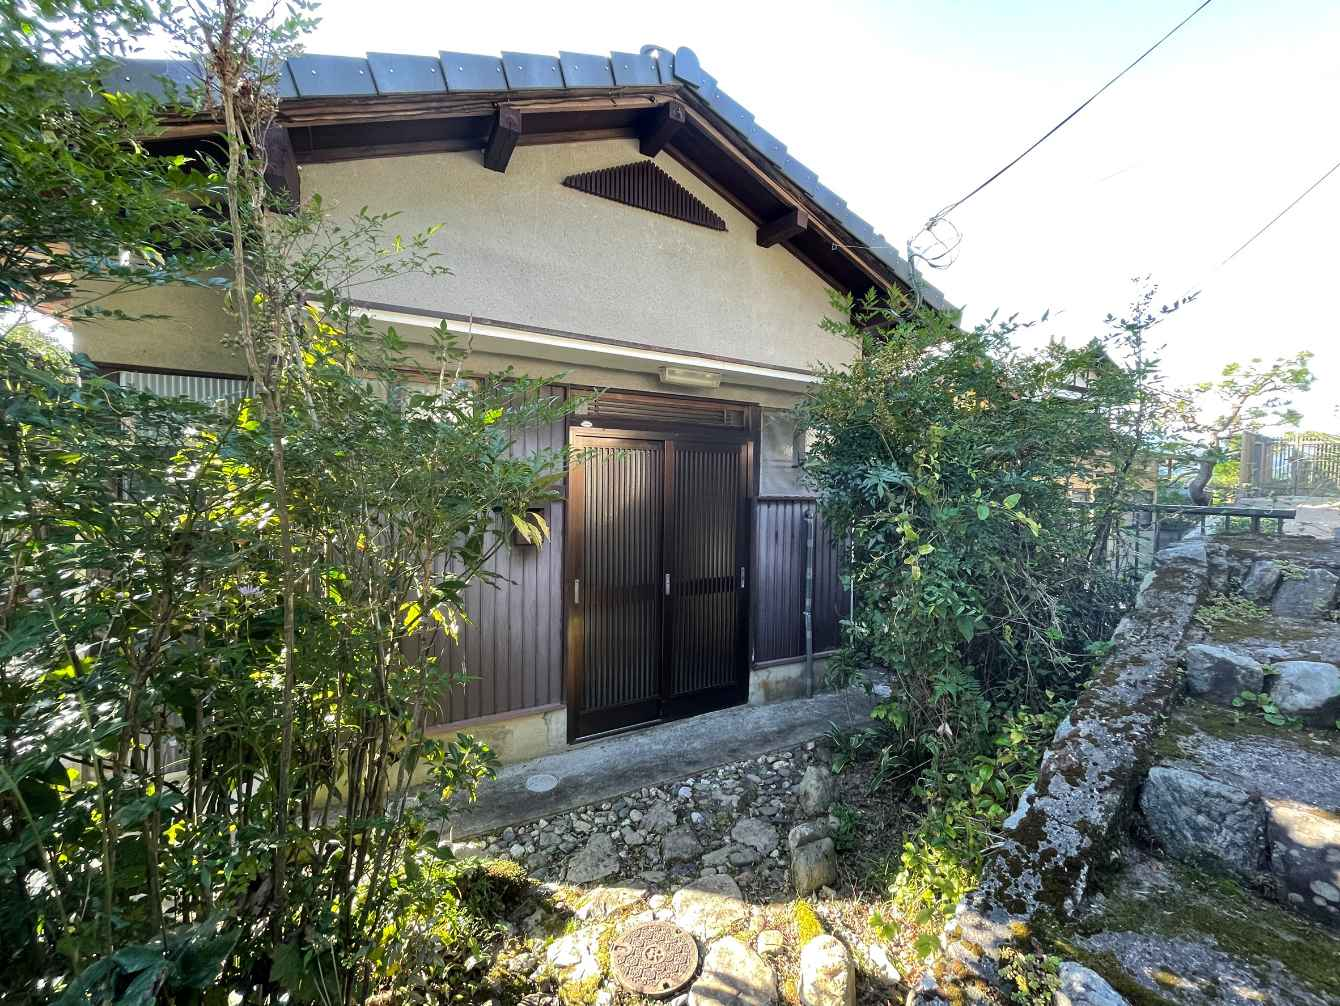 House in Yase, Ohara Onagase-cho, with Kitchen Garden, for Sale in Sakyo Ward